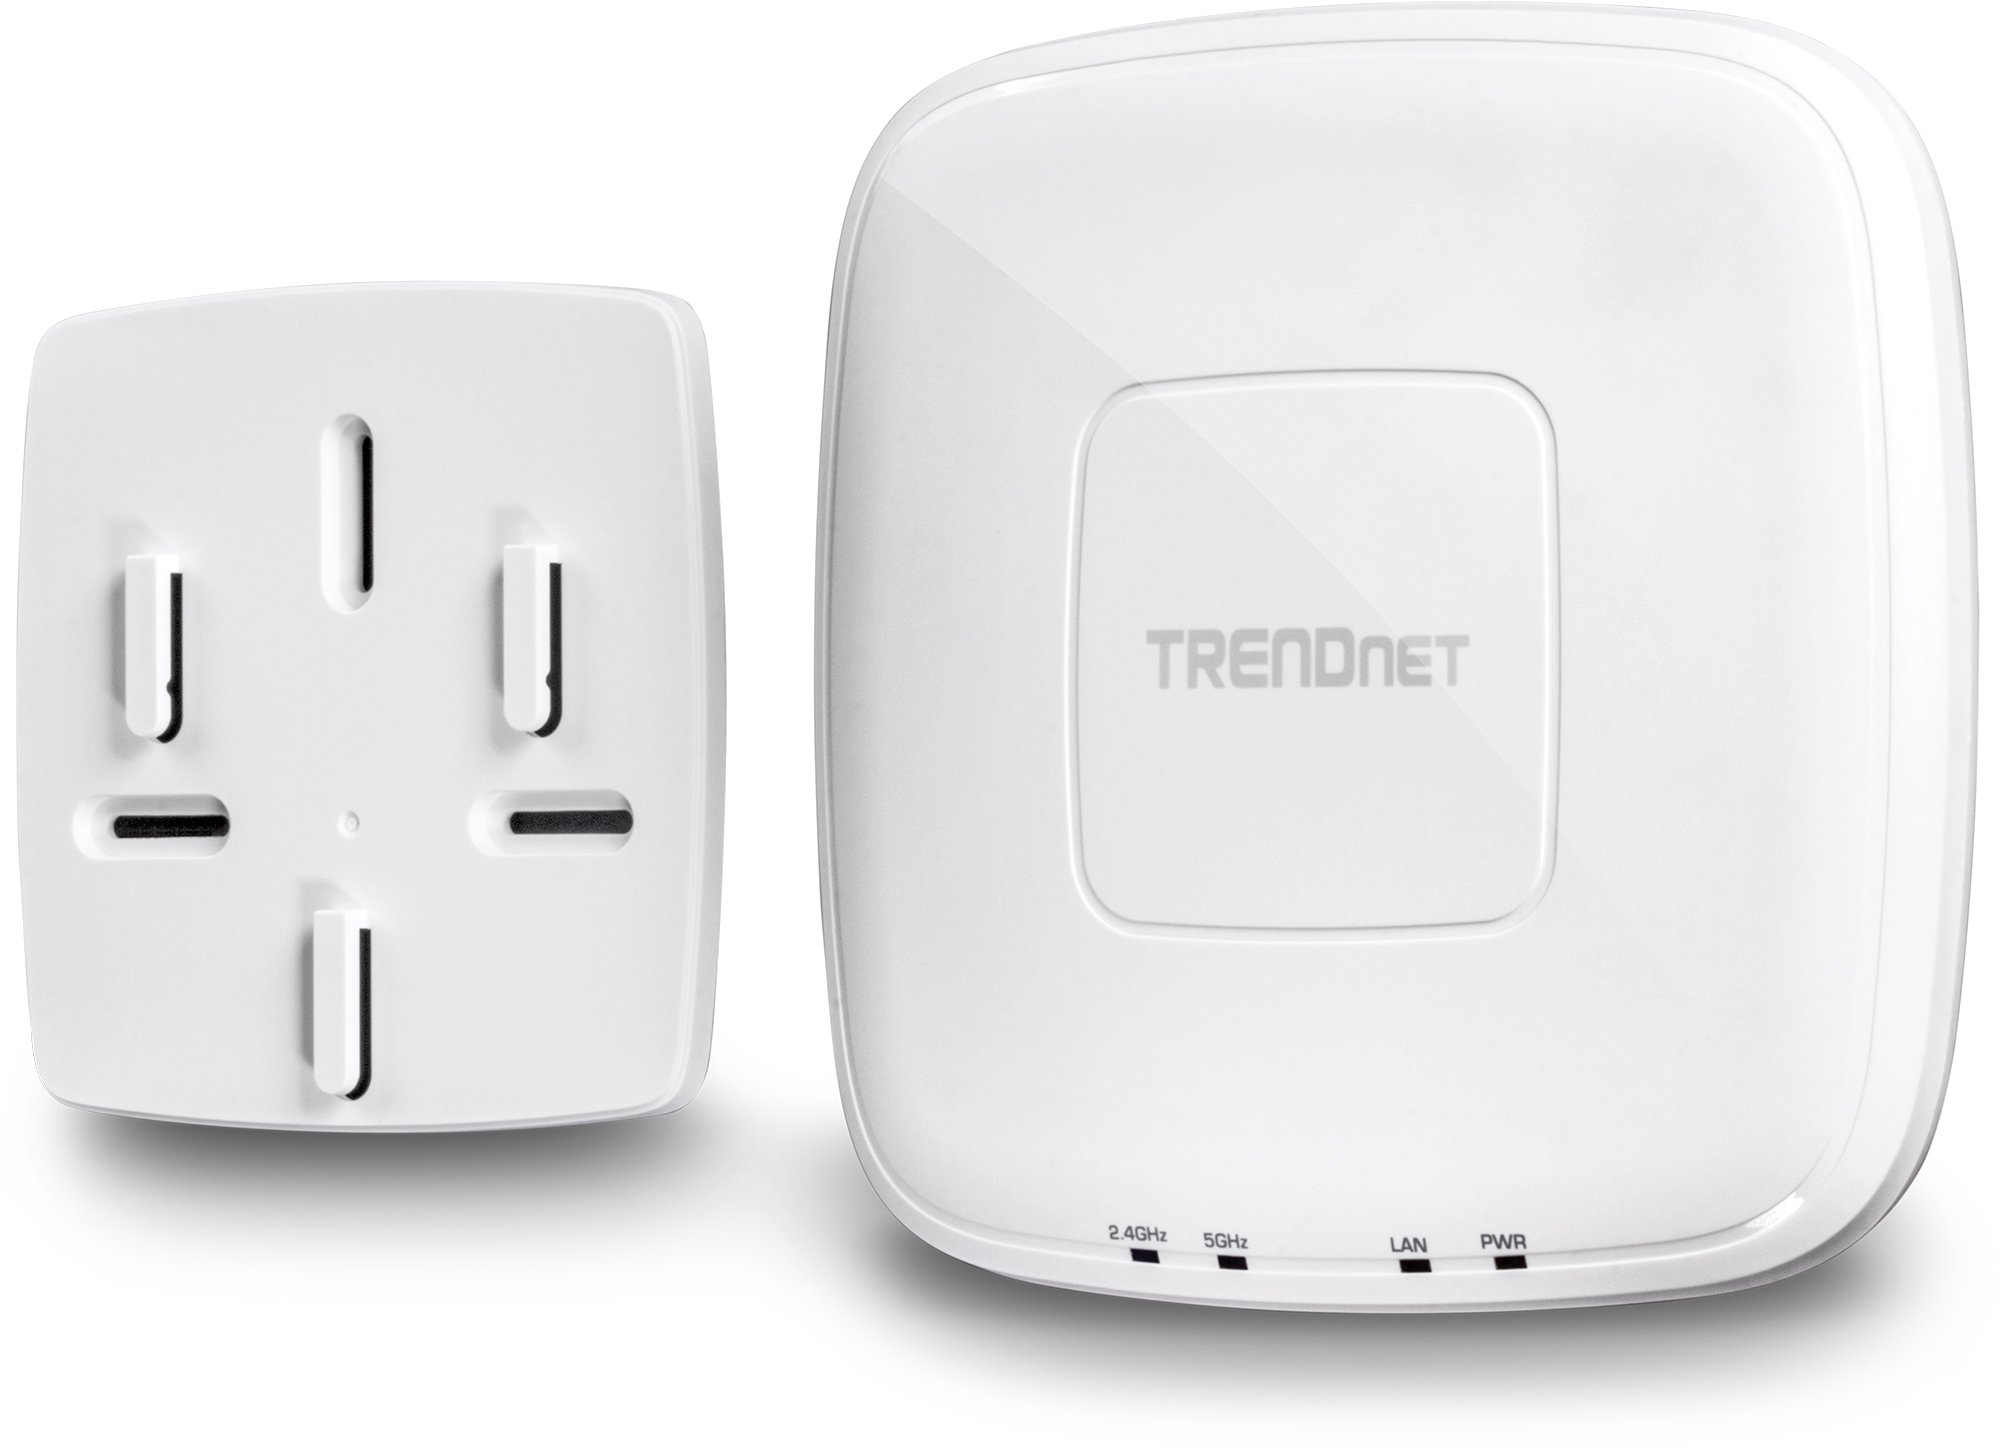 TRENDnet AC1200 Dual Band PoE Access Point, 867 Mbps WiFi AC+ 300 Mbps WiFi N Bands, Client, WDS, AP, WDS Bridge, WDS Station, Repeater Modes, Easy Install, TEW-821DAP by TRENDnet (Image #4)